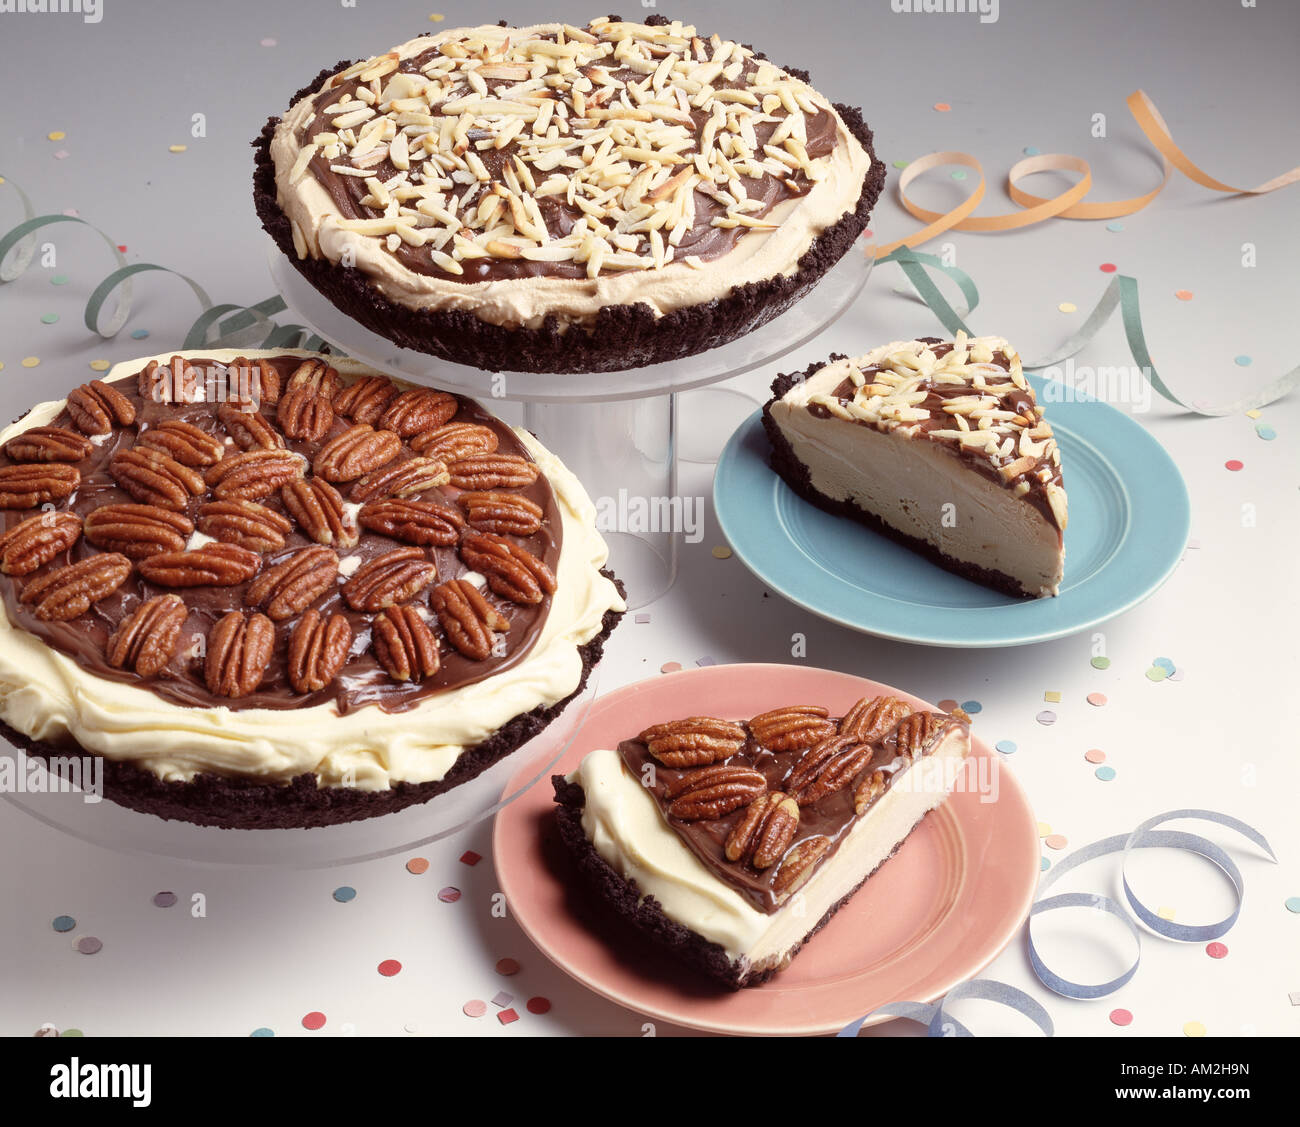 Ice Cream Pies Pecan Peanut Butter Party Holiday Birthday Celebration